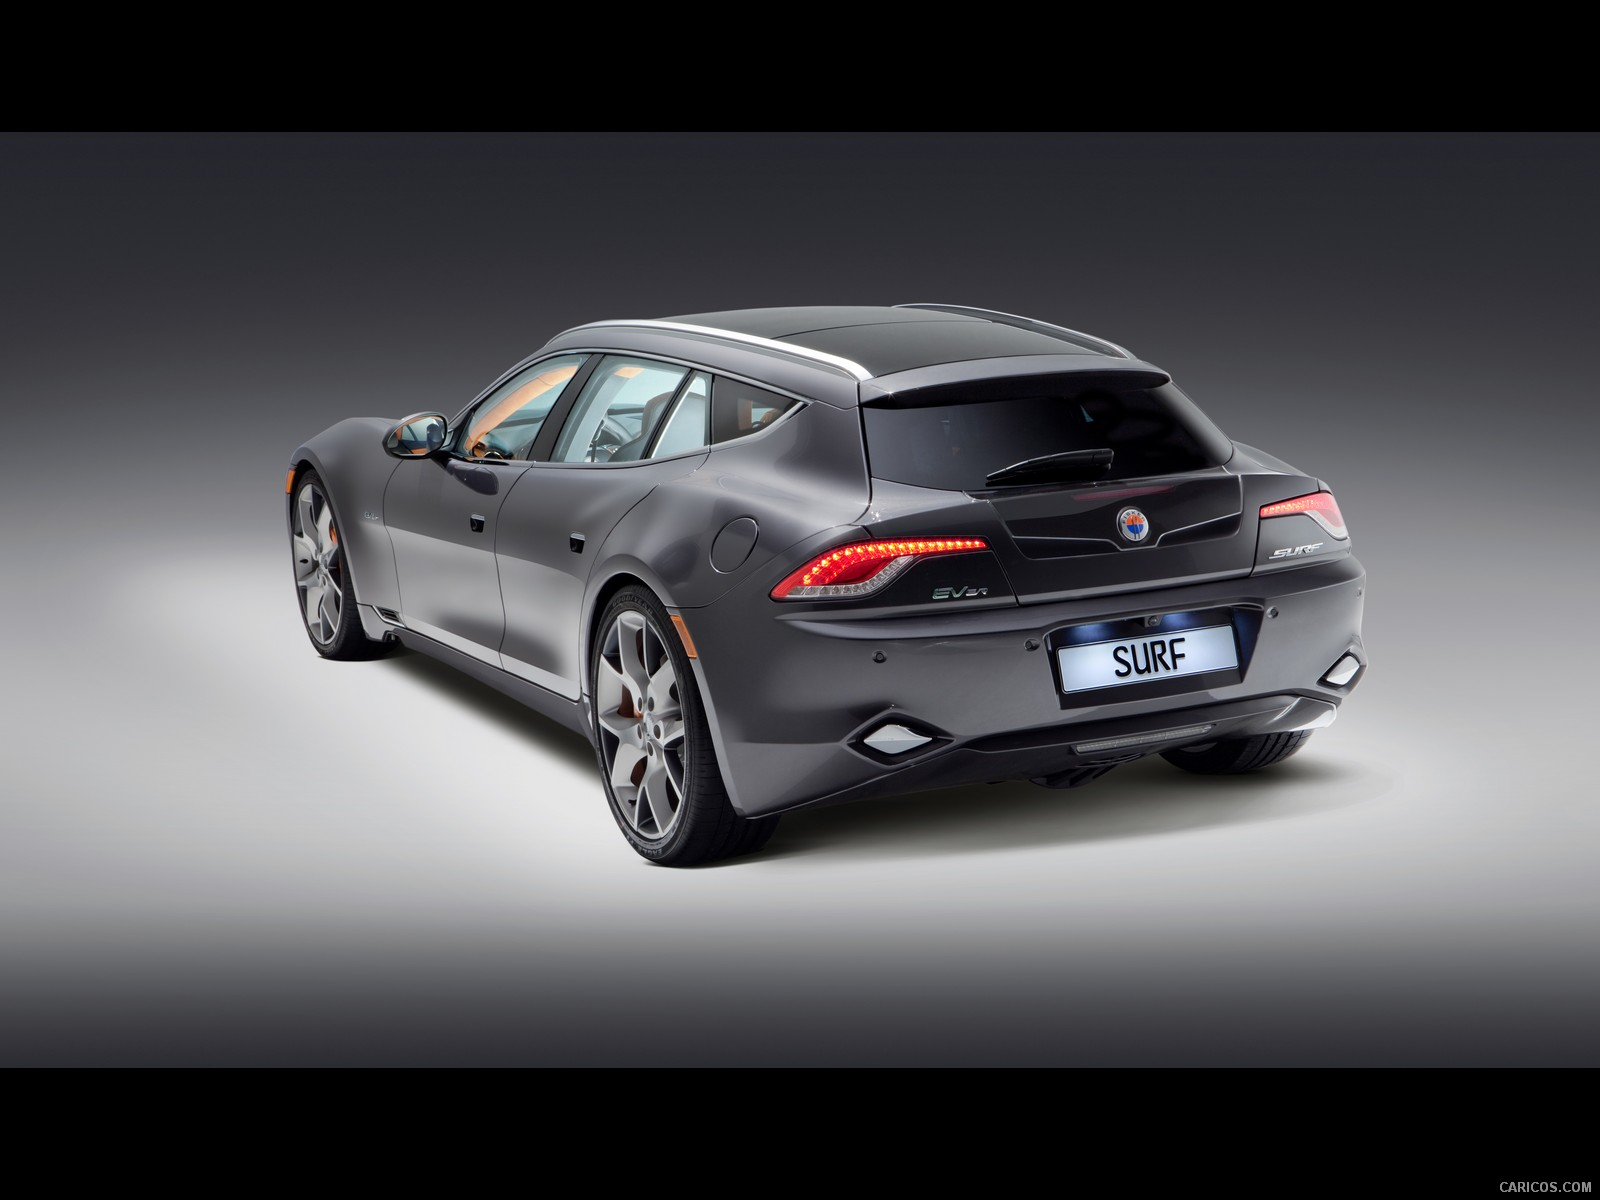 Fisker Surf photo 133046